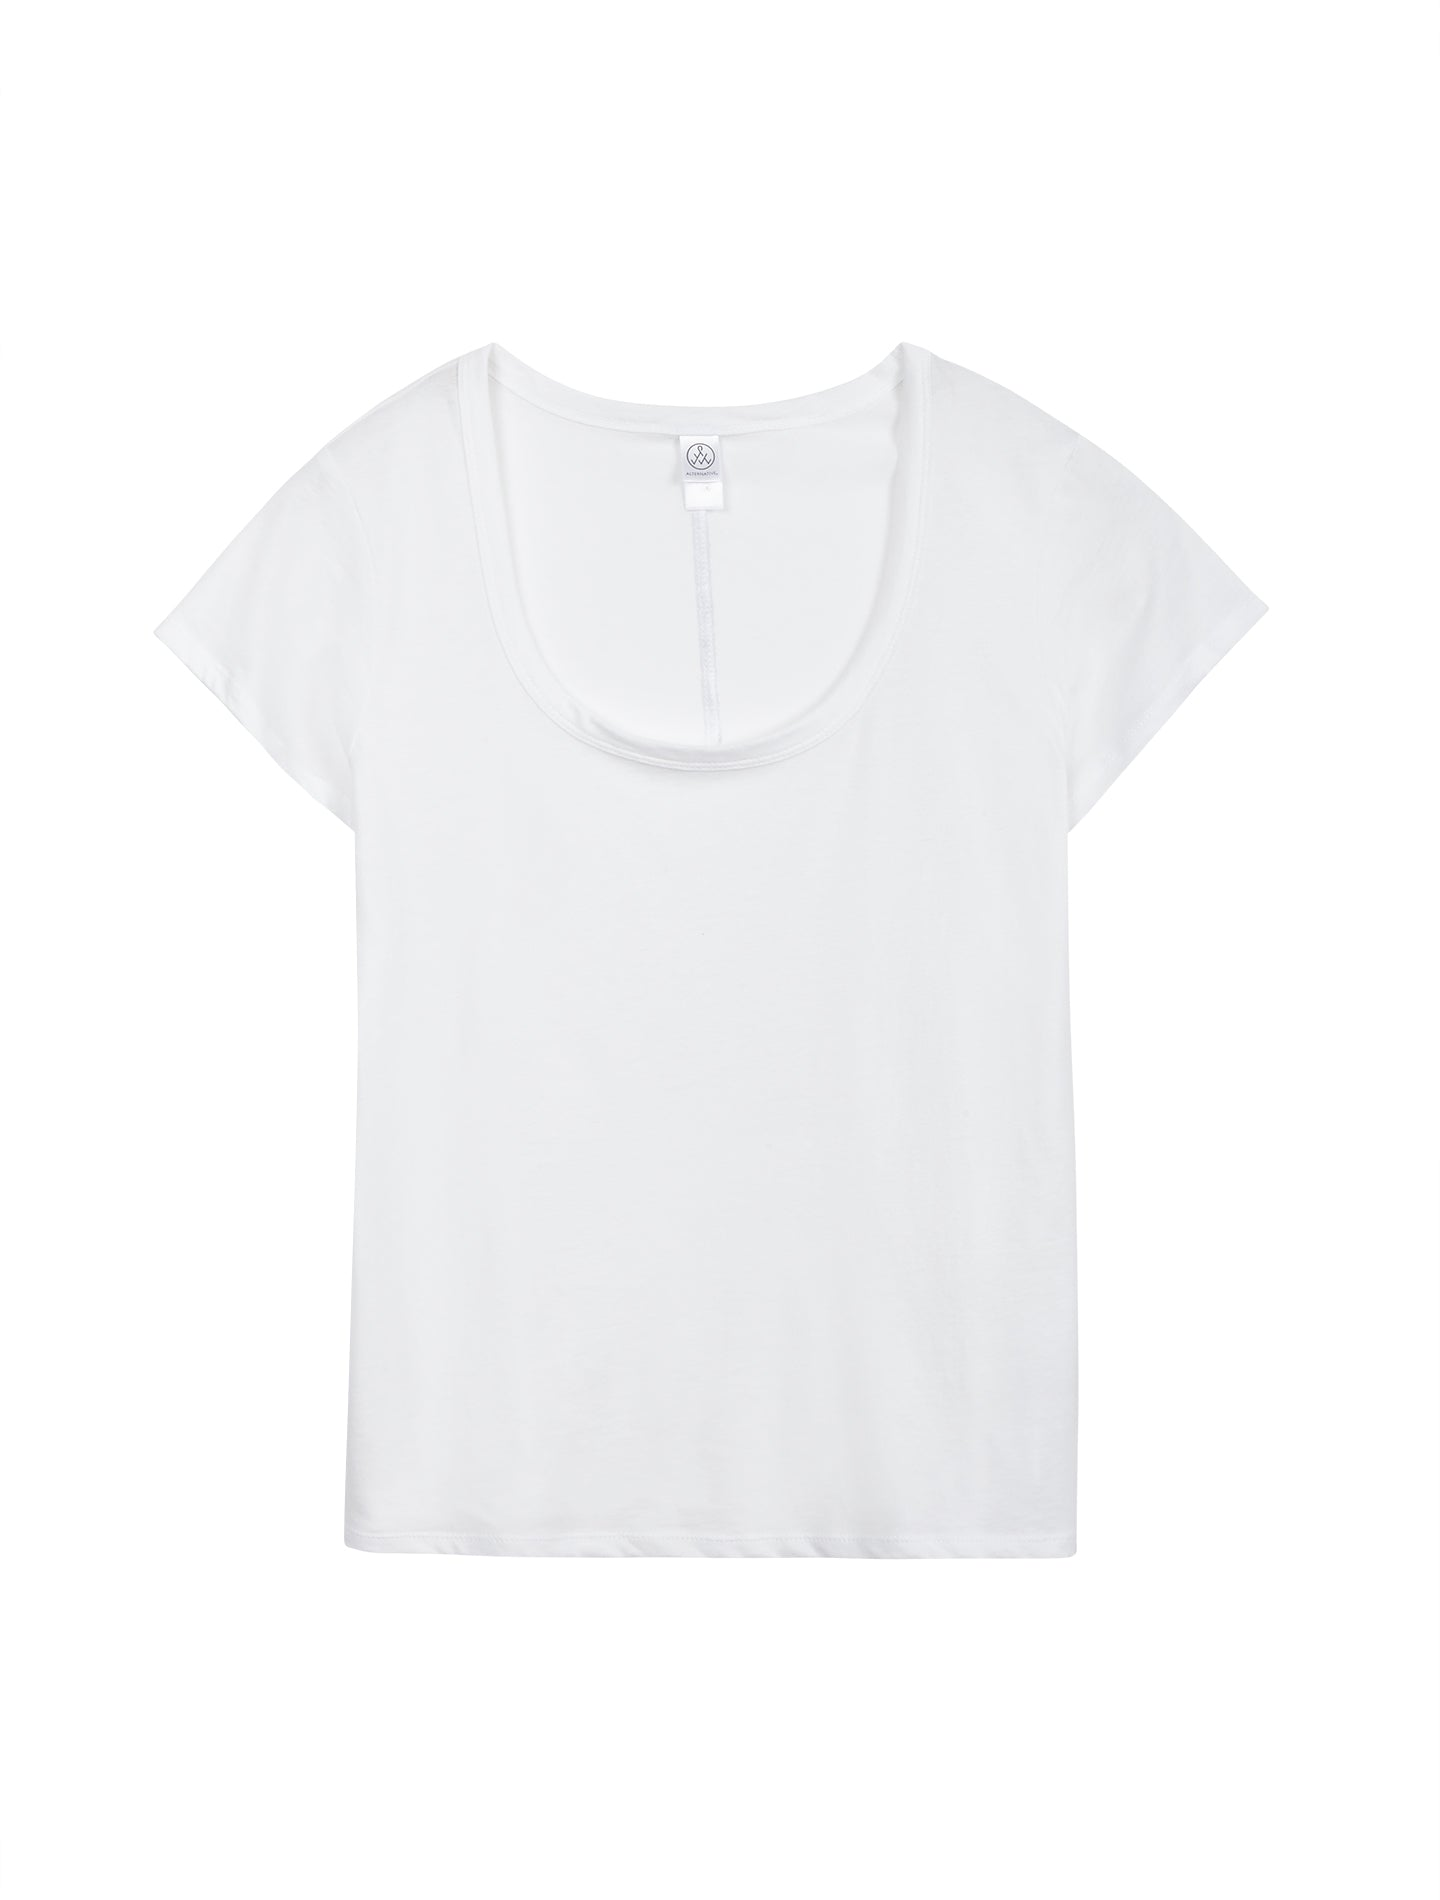 Organic Cotton Scoop T-Shirt in Earth White